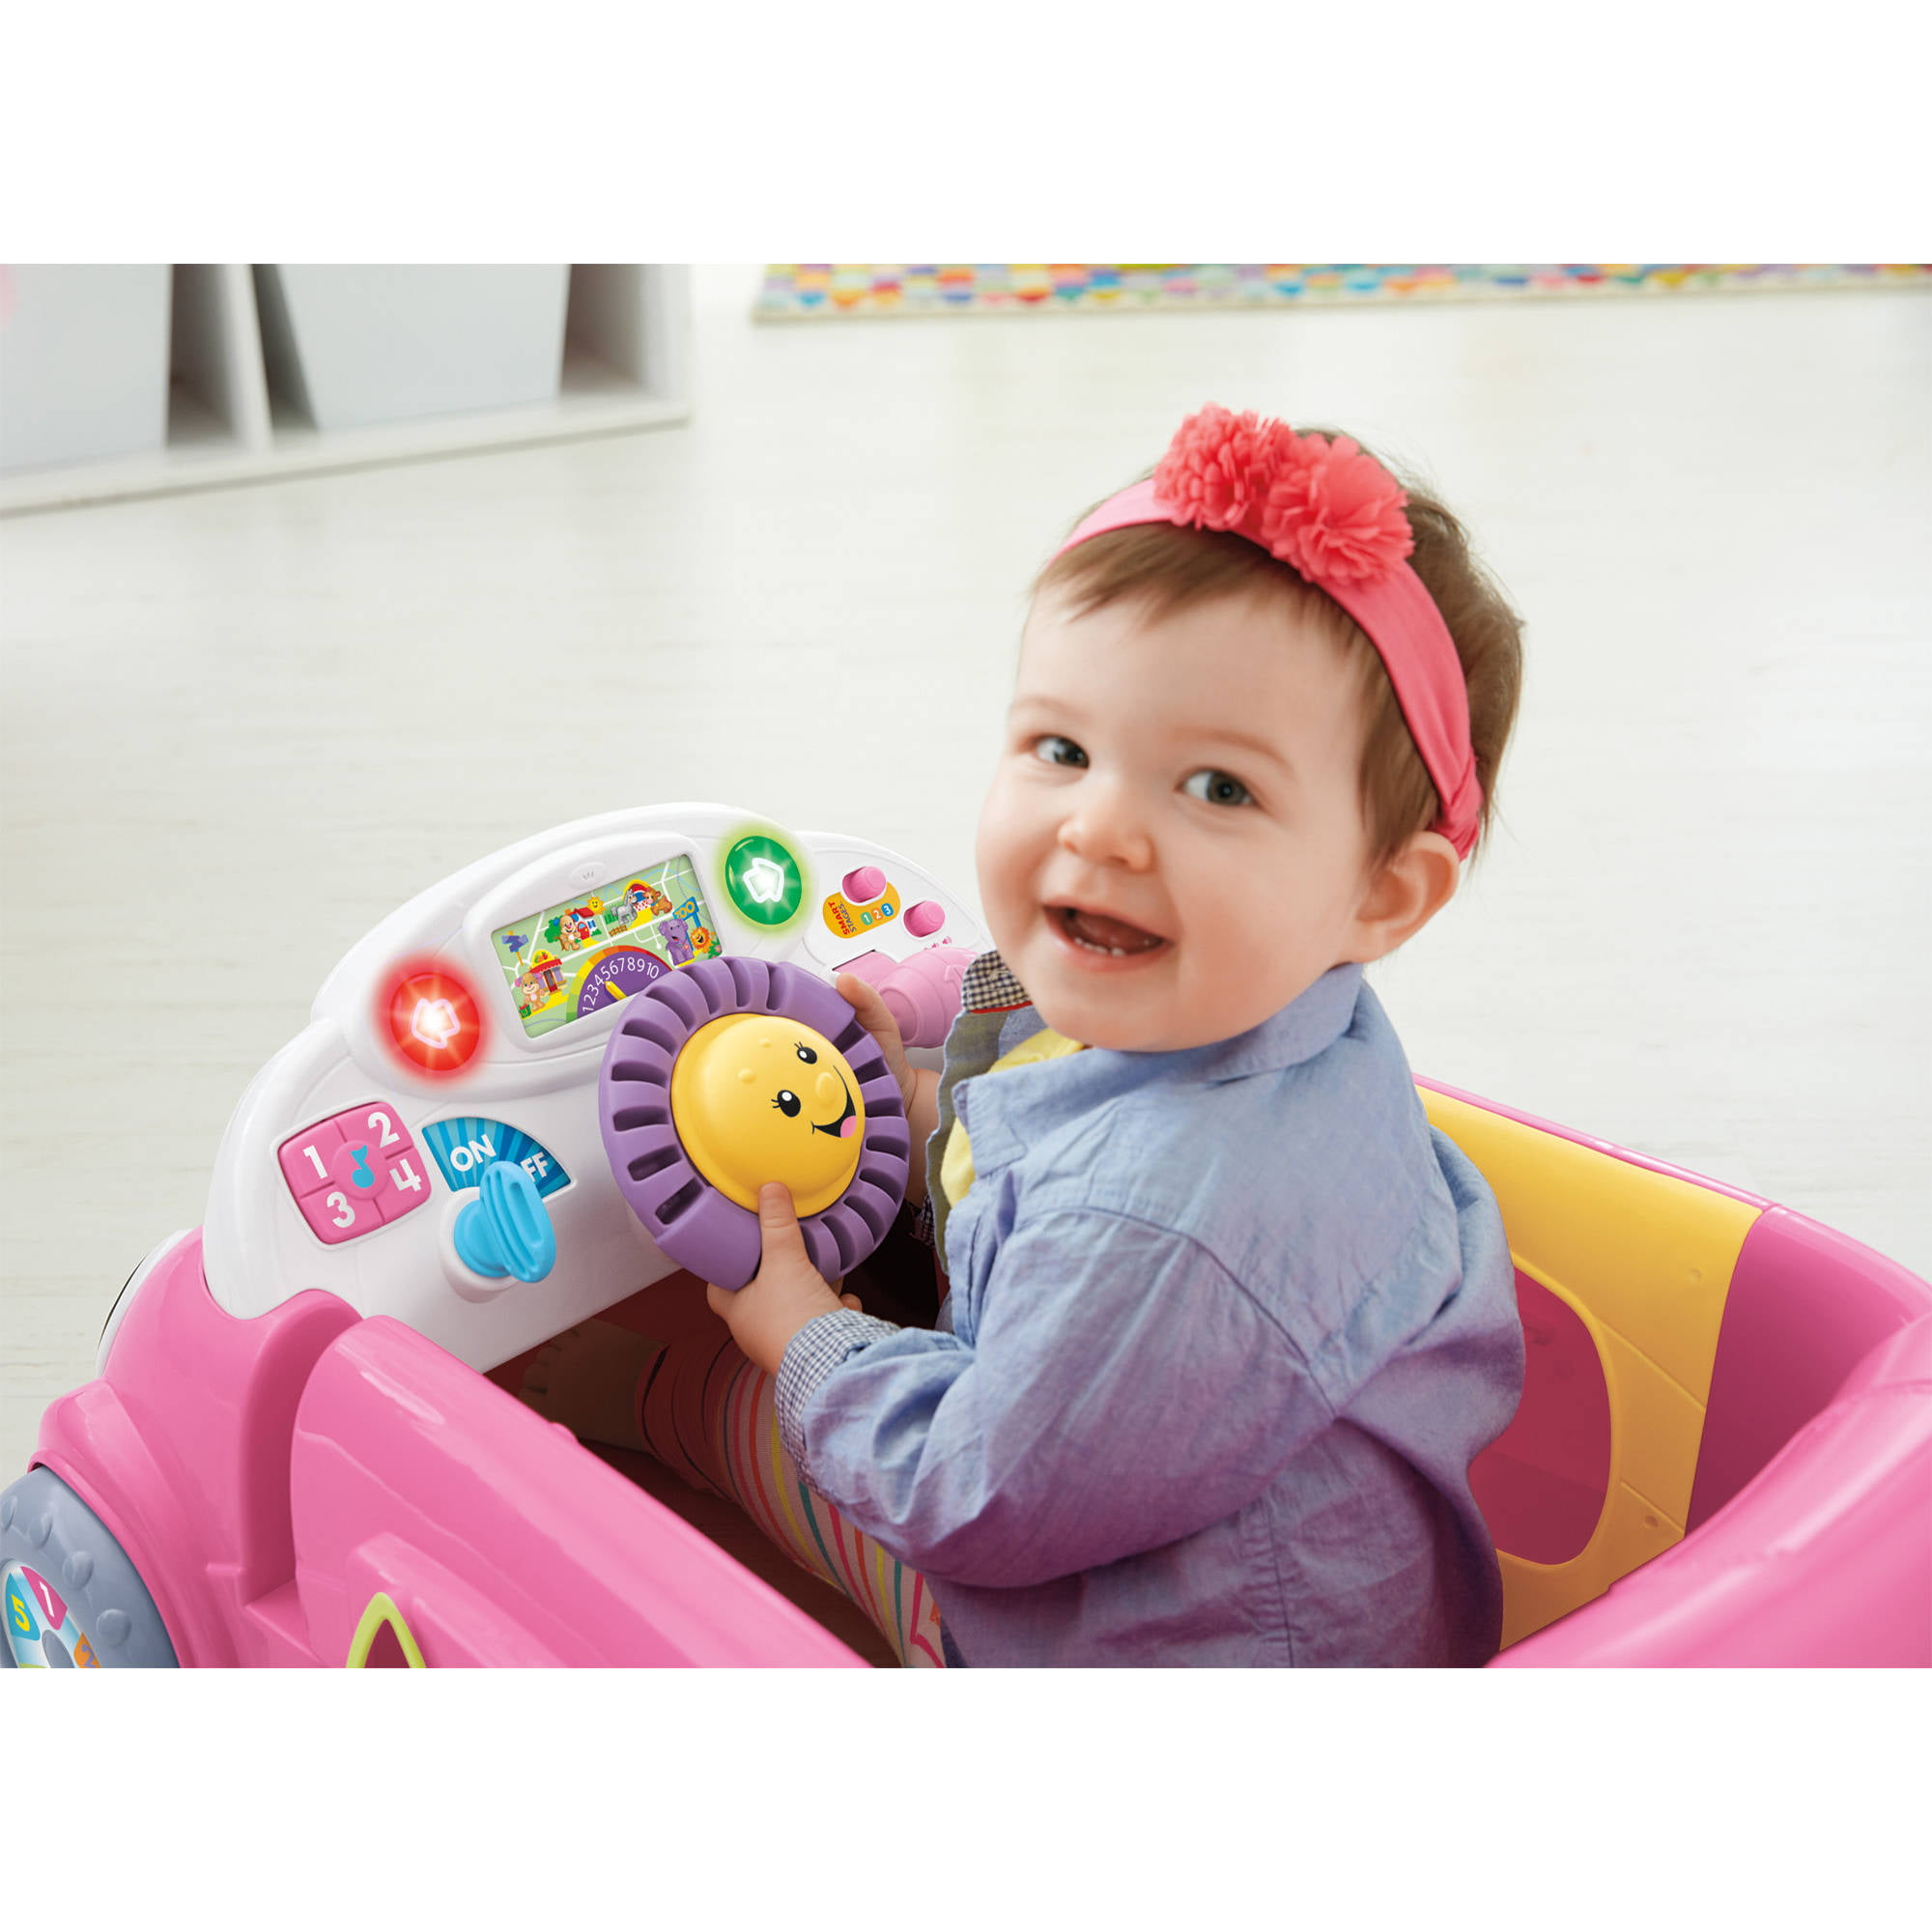 Fisher Price Laugh & Learn Smart Stages Crawl Around Car Pink